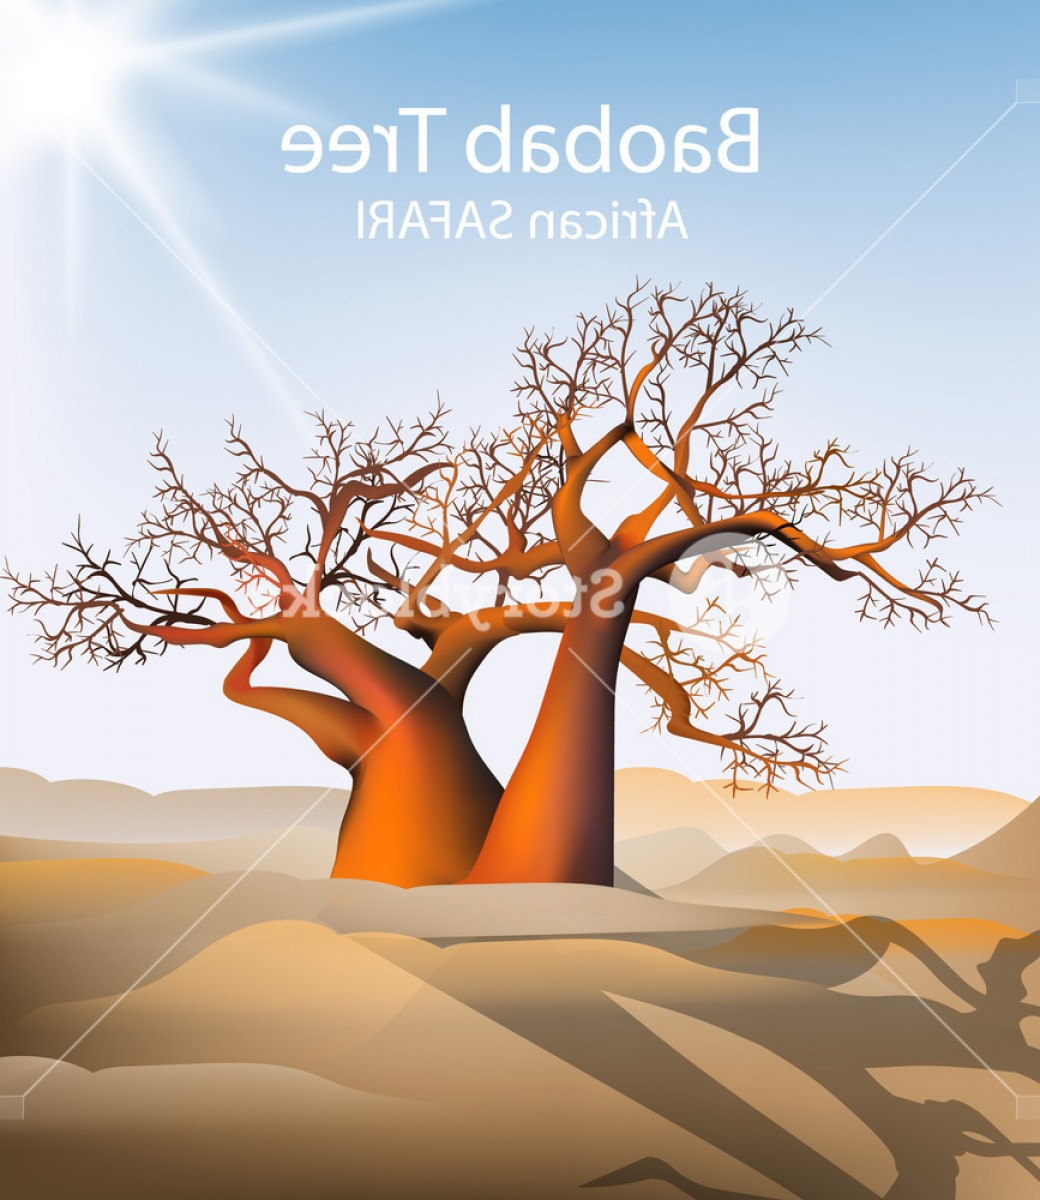 Sand Dune Silhouettes Vectors: Baobab Tree Vector Safari Background Hot Sunny Day And Sand Dunes Illustration Botrubejikrj